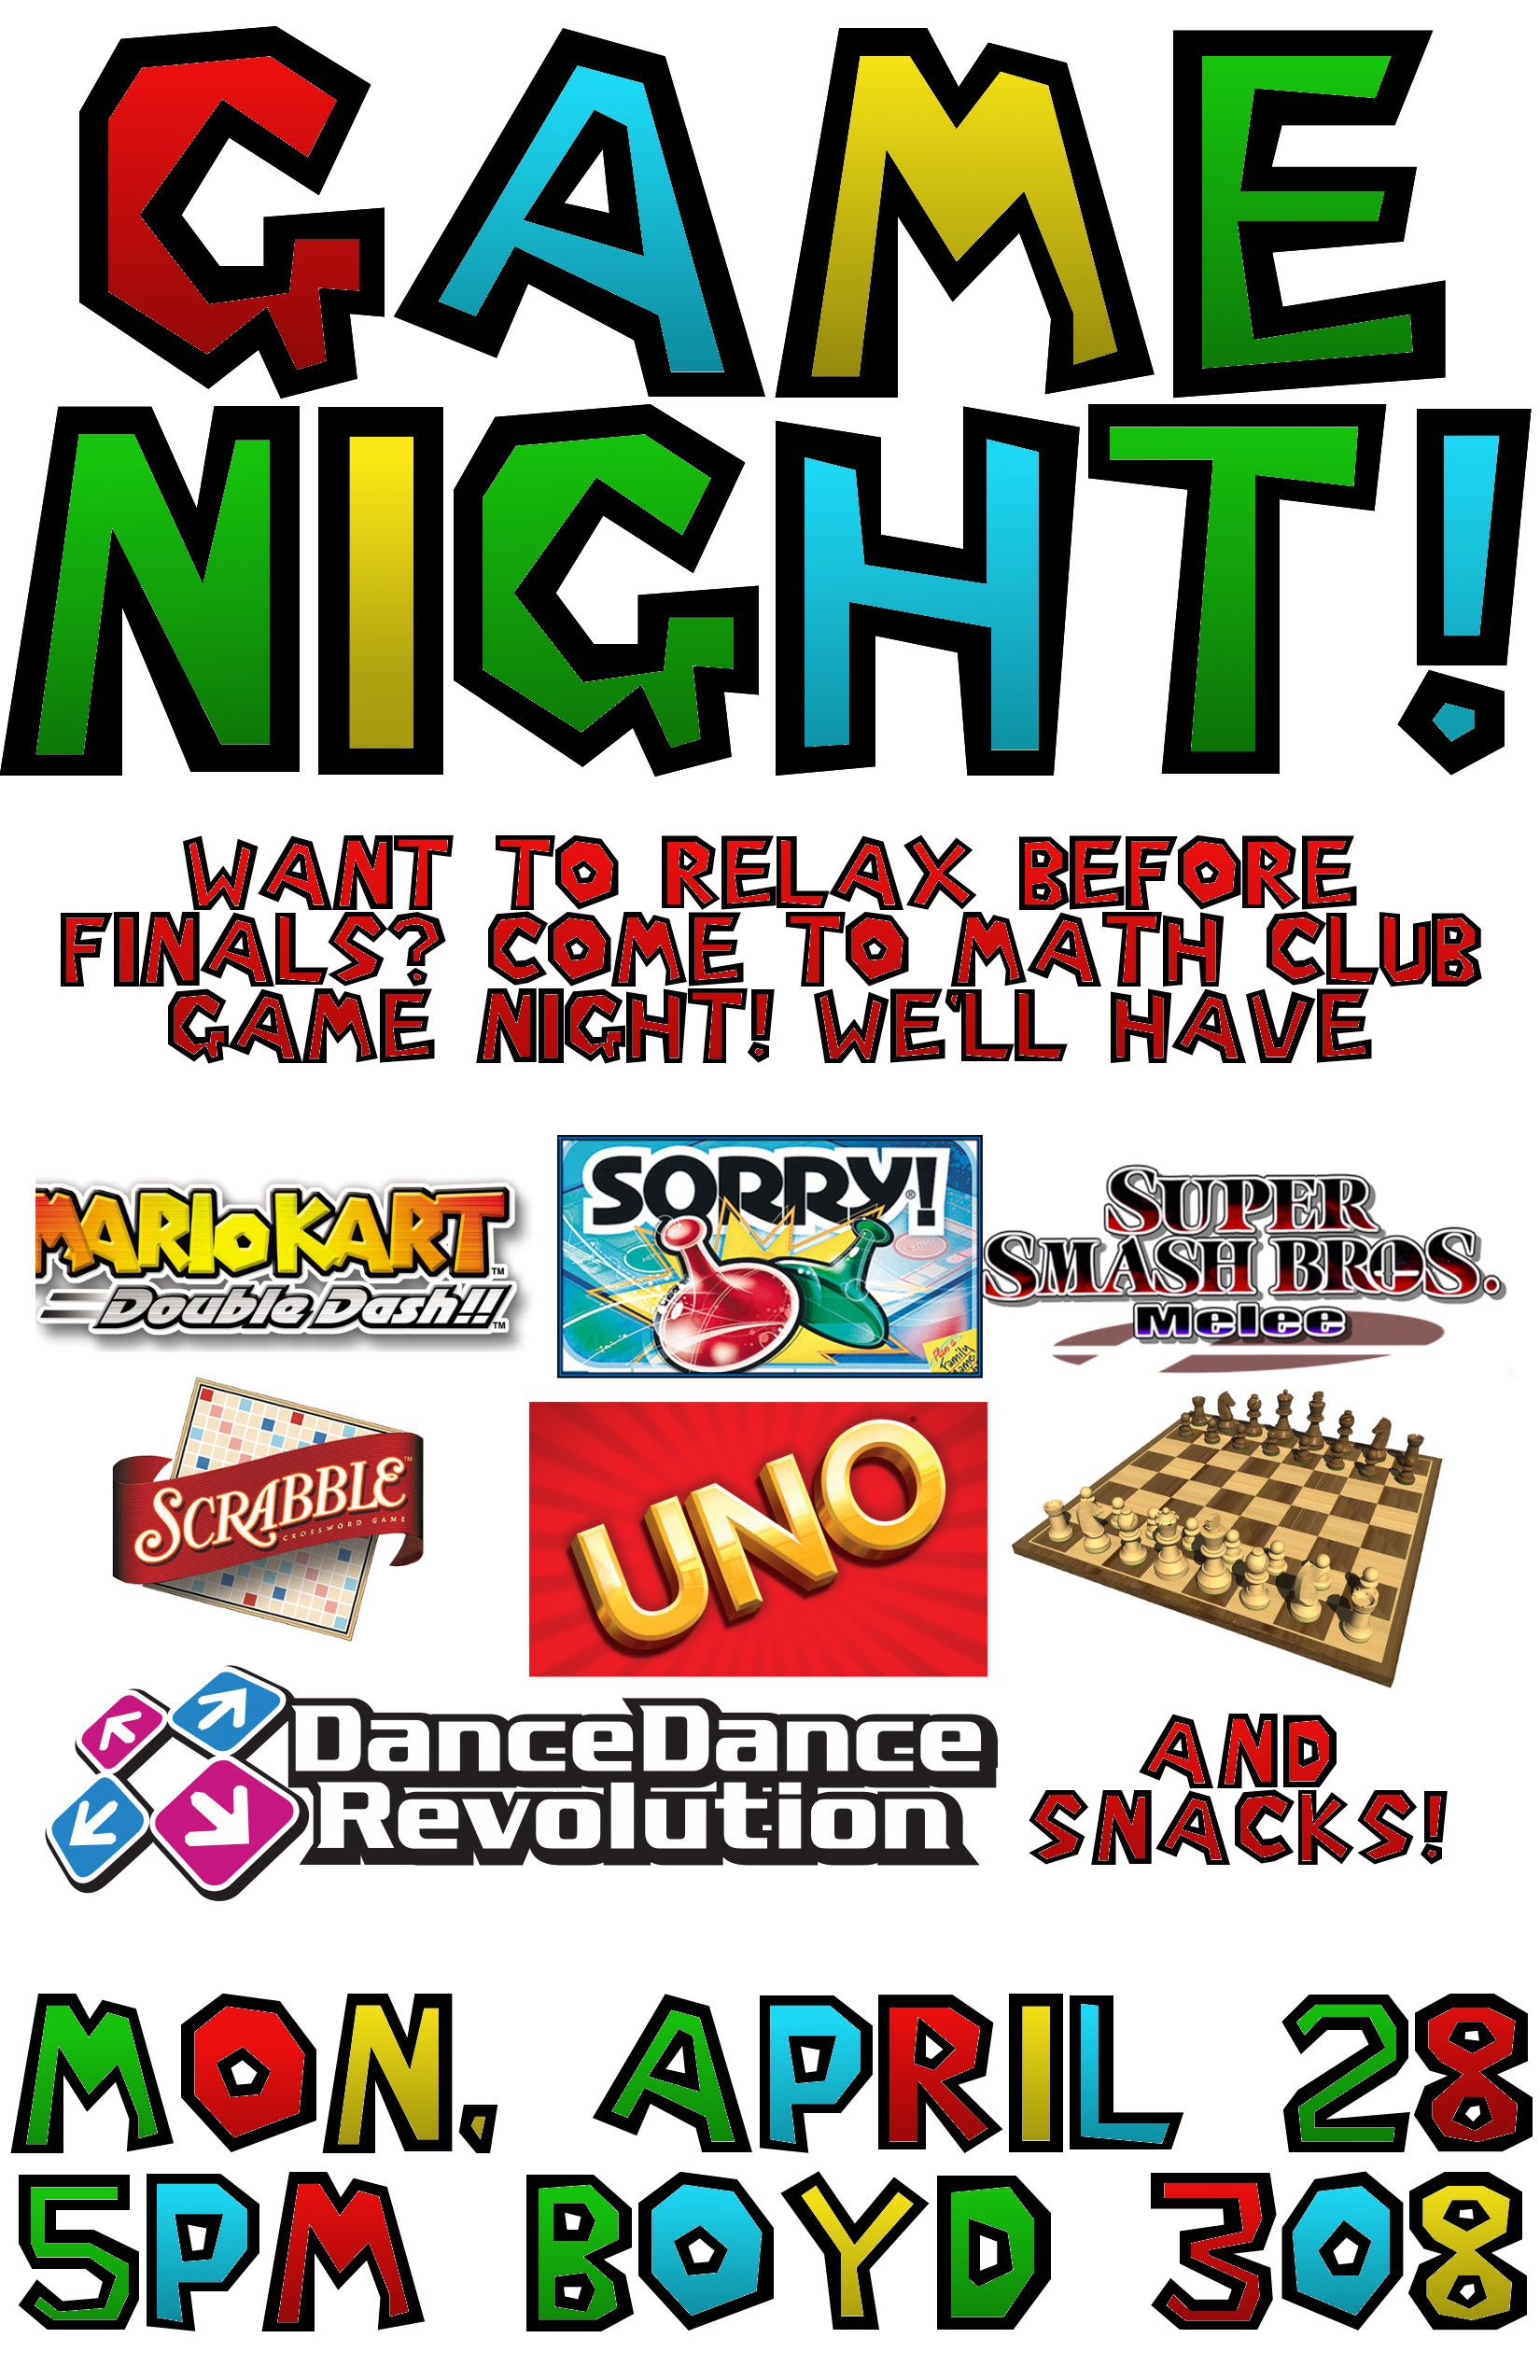 game night invitations Google Search Game night, Flyer